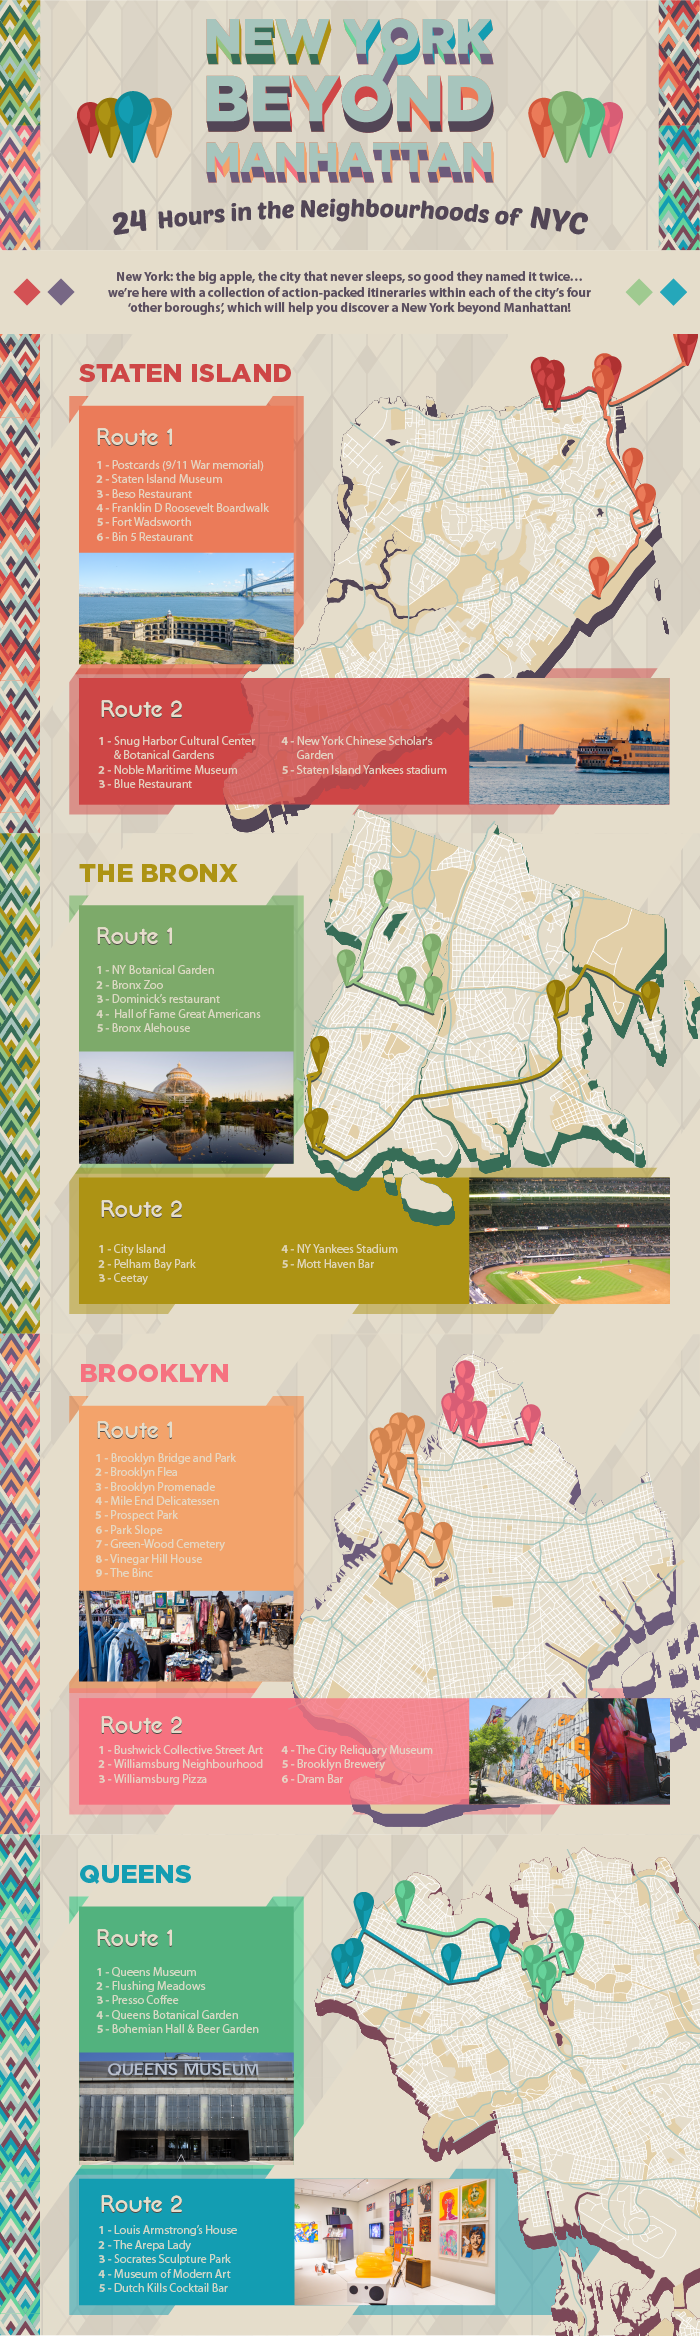 New York Is Not Just About Manhattan! - Infographic